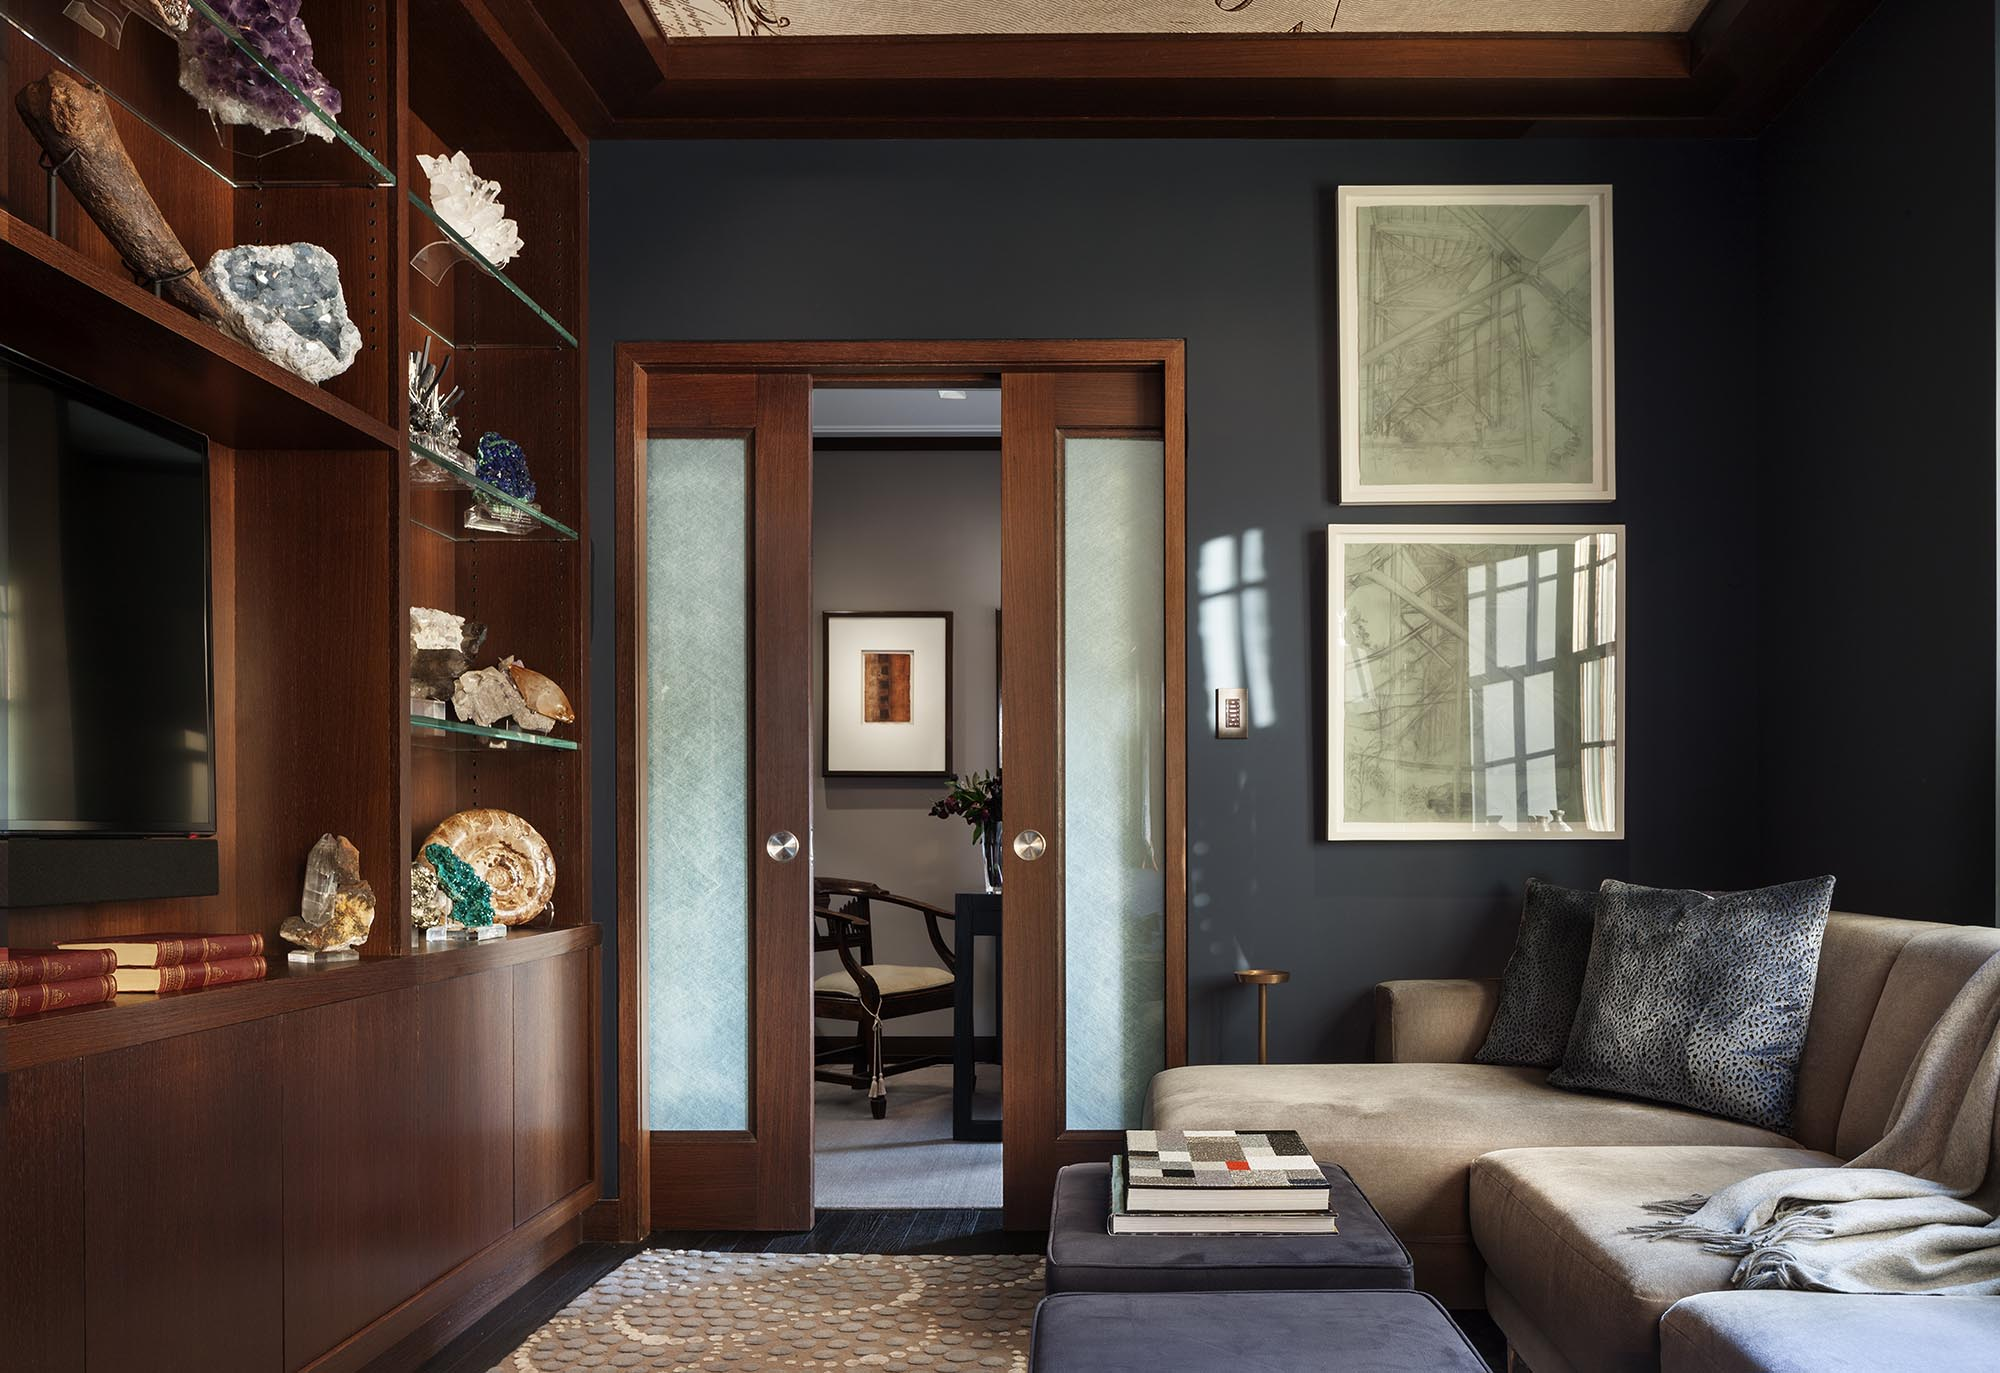 79th Street Apartment, Lenox Hill, Manhattan, Central Park transitional, astro gallery of gems, study library, pocket doors